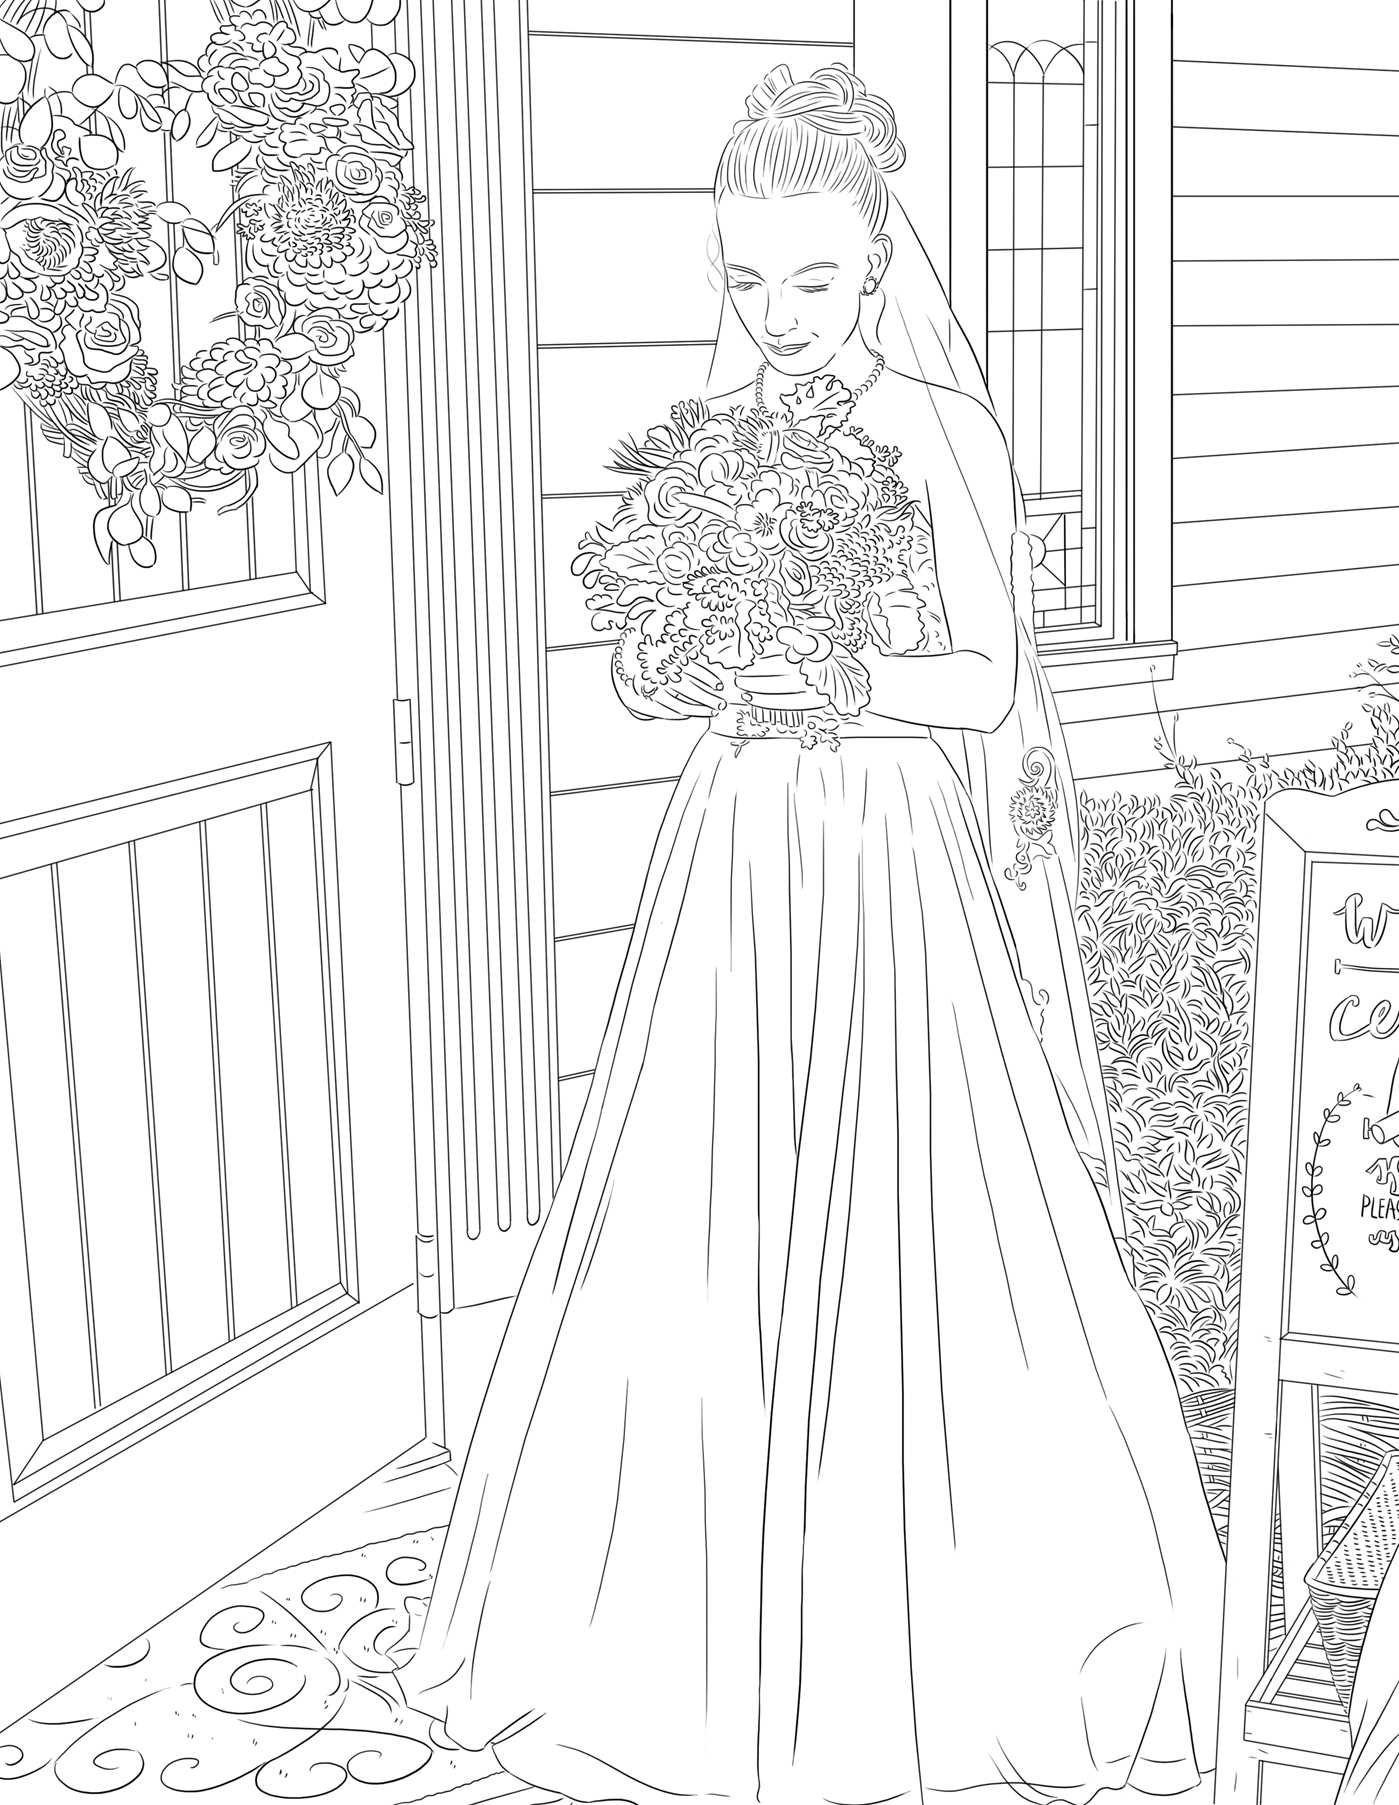 Amazon.com: The Maci and Taylor Wedding Album: An Adult Coloring ...